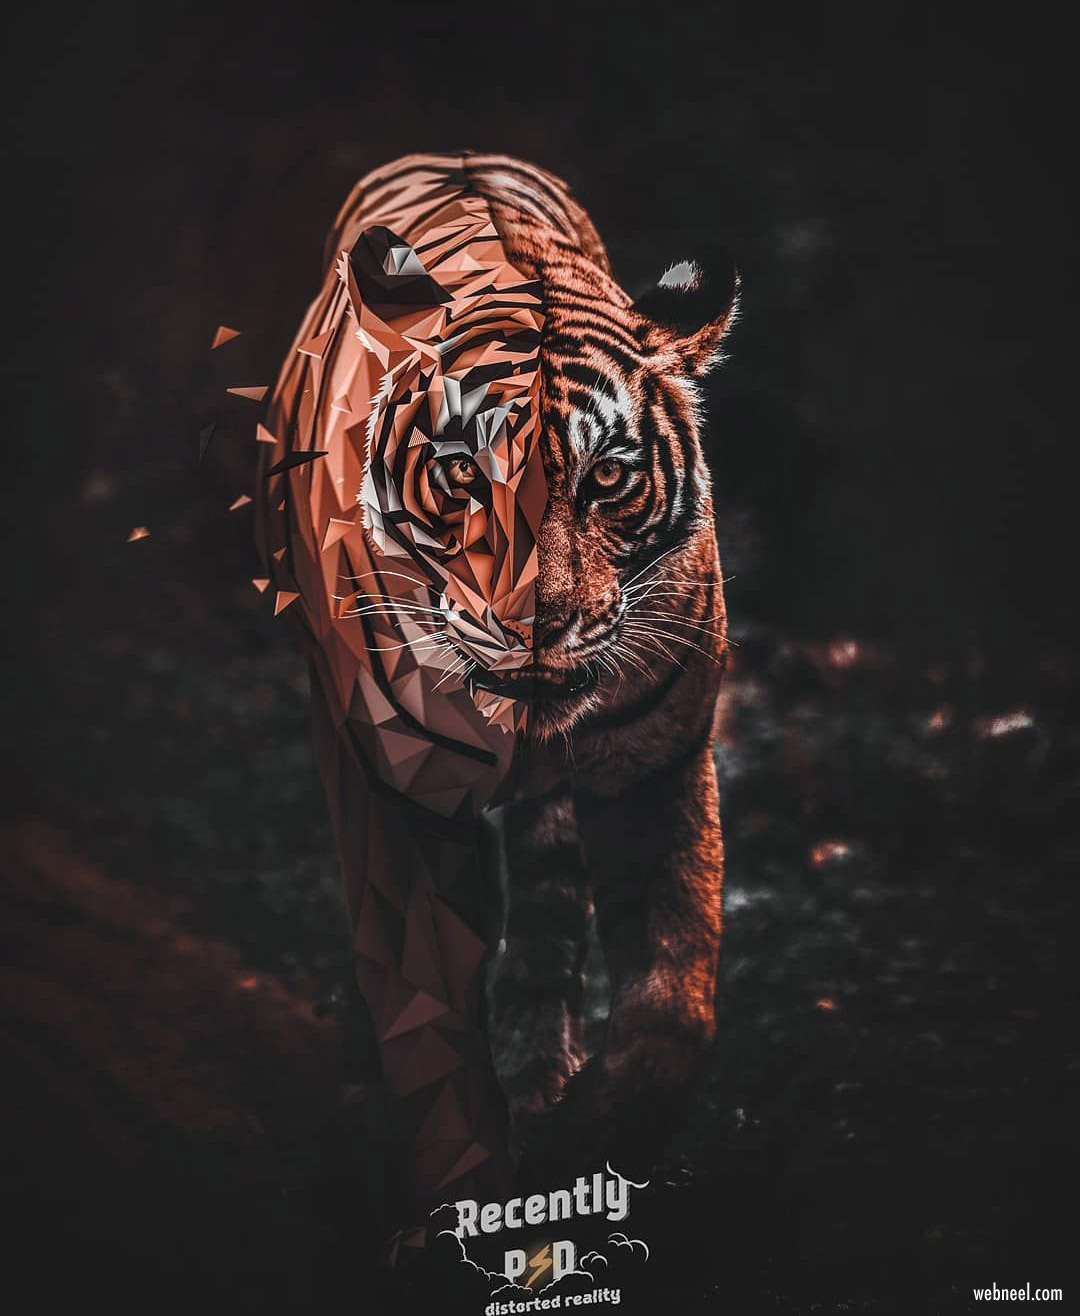 photo manipulation illustration distorted tiger by artem gusev